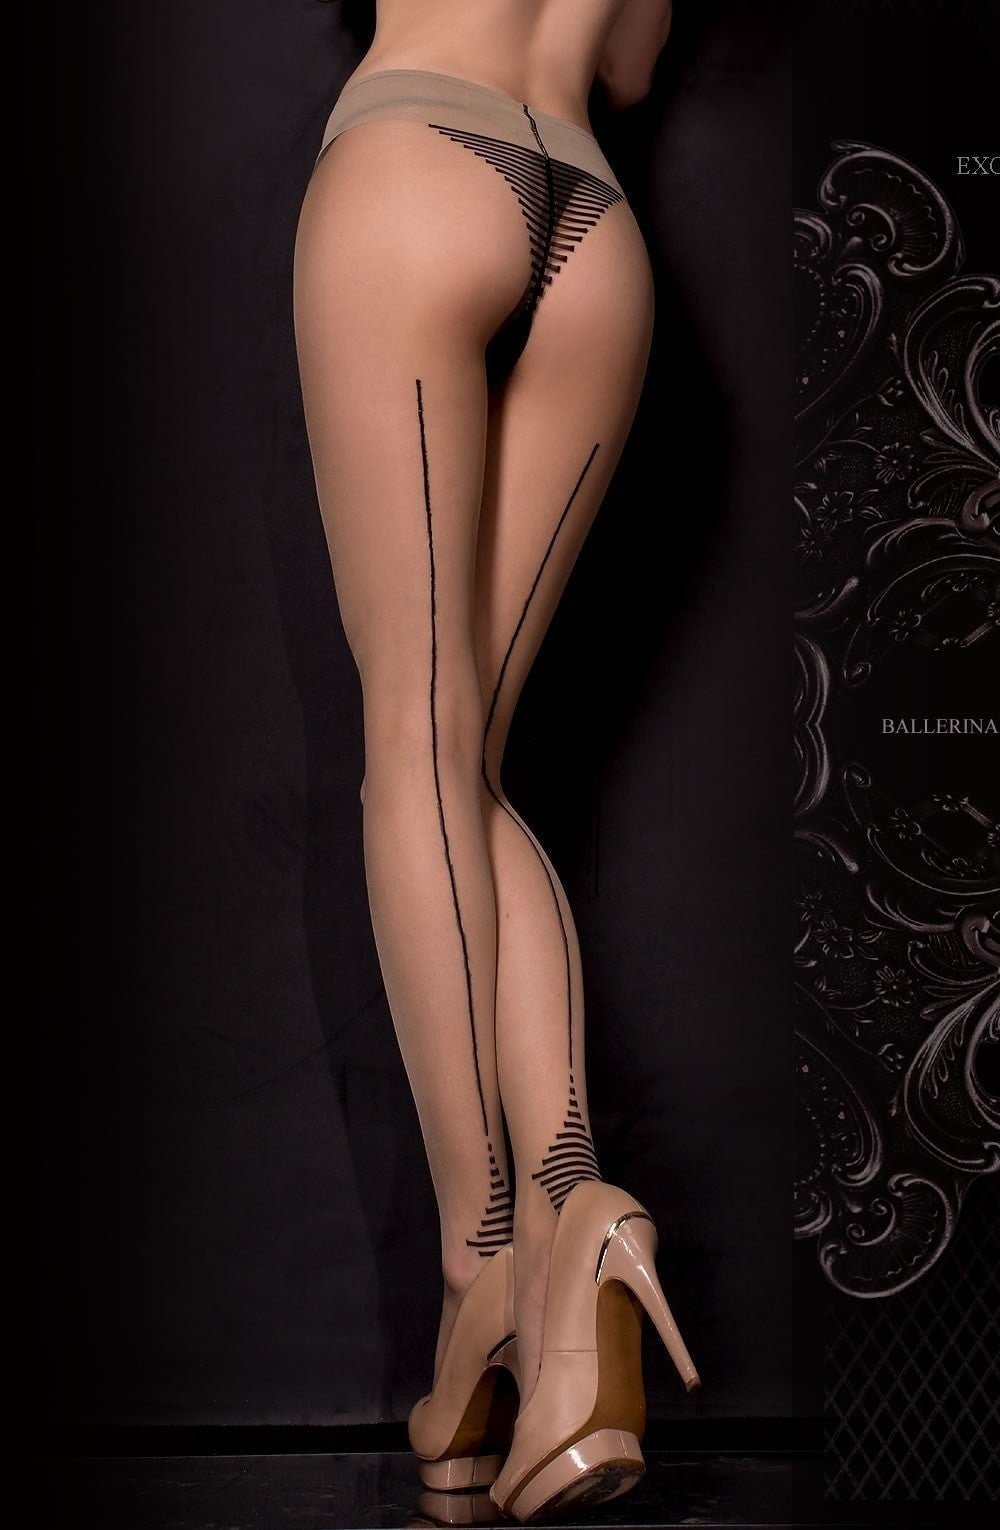 Ballerina Tights 311 (Black/Skin) - Tights - Ballerina - Charm and Lace Boutique